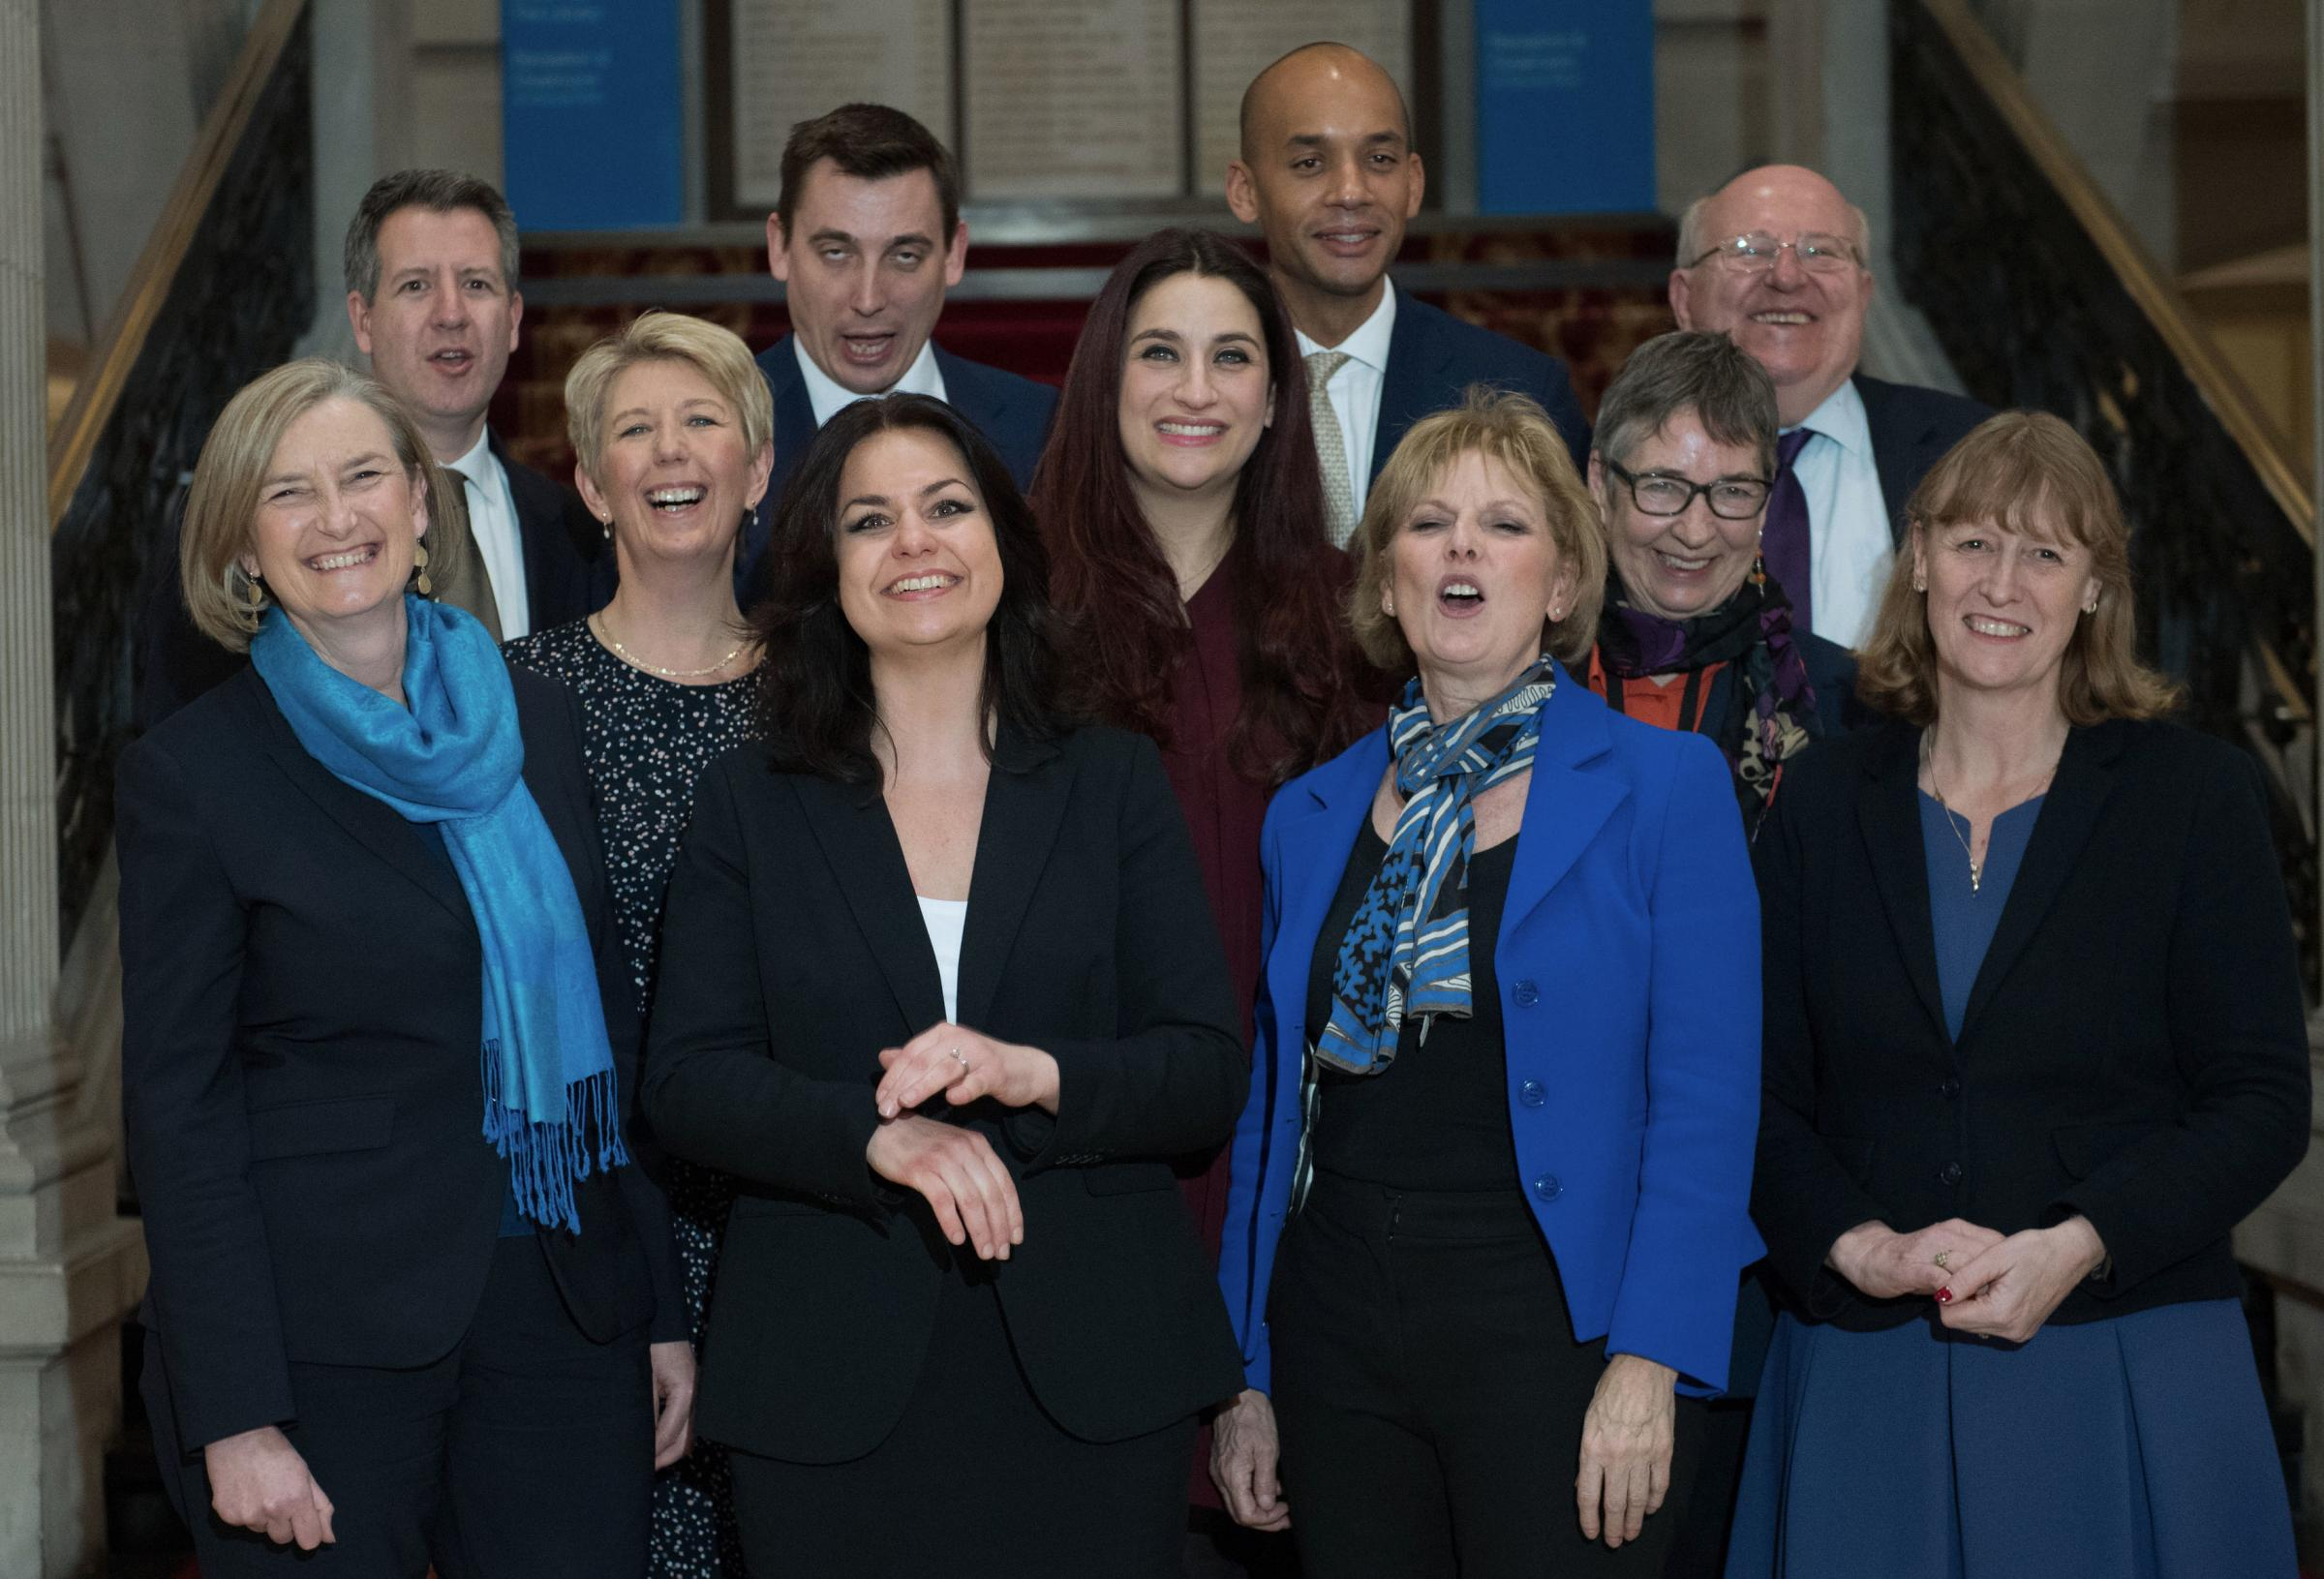 (back row left to right) Chris Leslie, Gavin Shuker, Chuka Umunna and Mike Gapes, (middle row, left to right) Angela Smith, Luciana Berger and Ann Coffey, (front row, left to right) Sarah Wollaston, Heidi Allen, Anna Soubry and Joan Ryan, following a pres